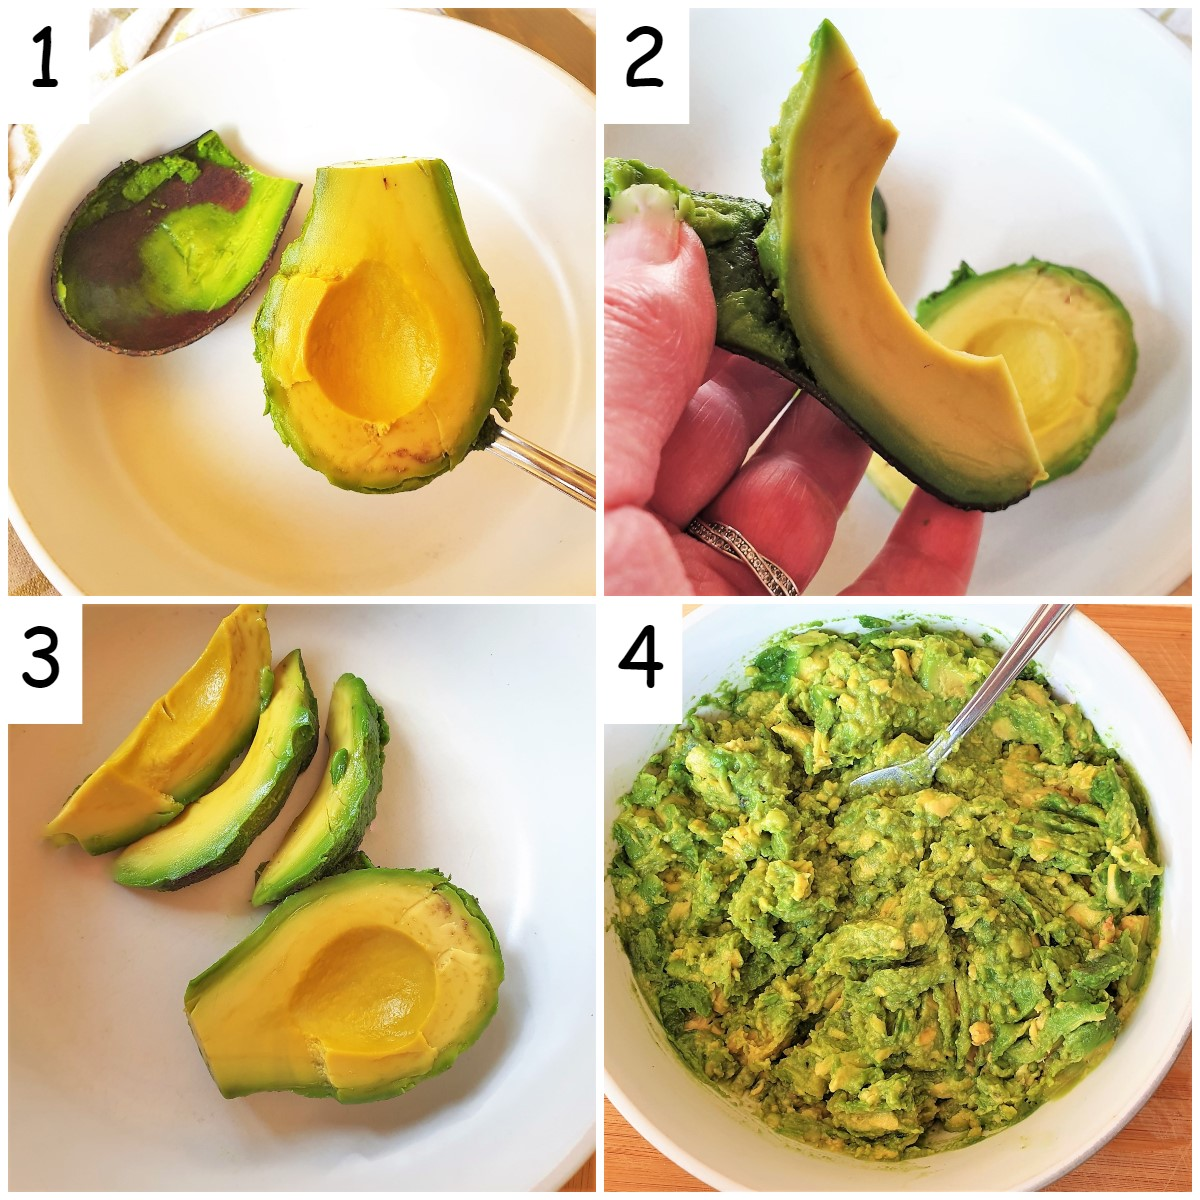 A collage of 4 images showing how to remove the skin from the avocado.